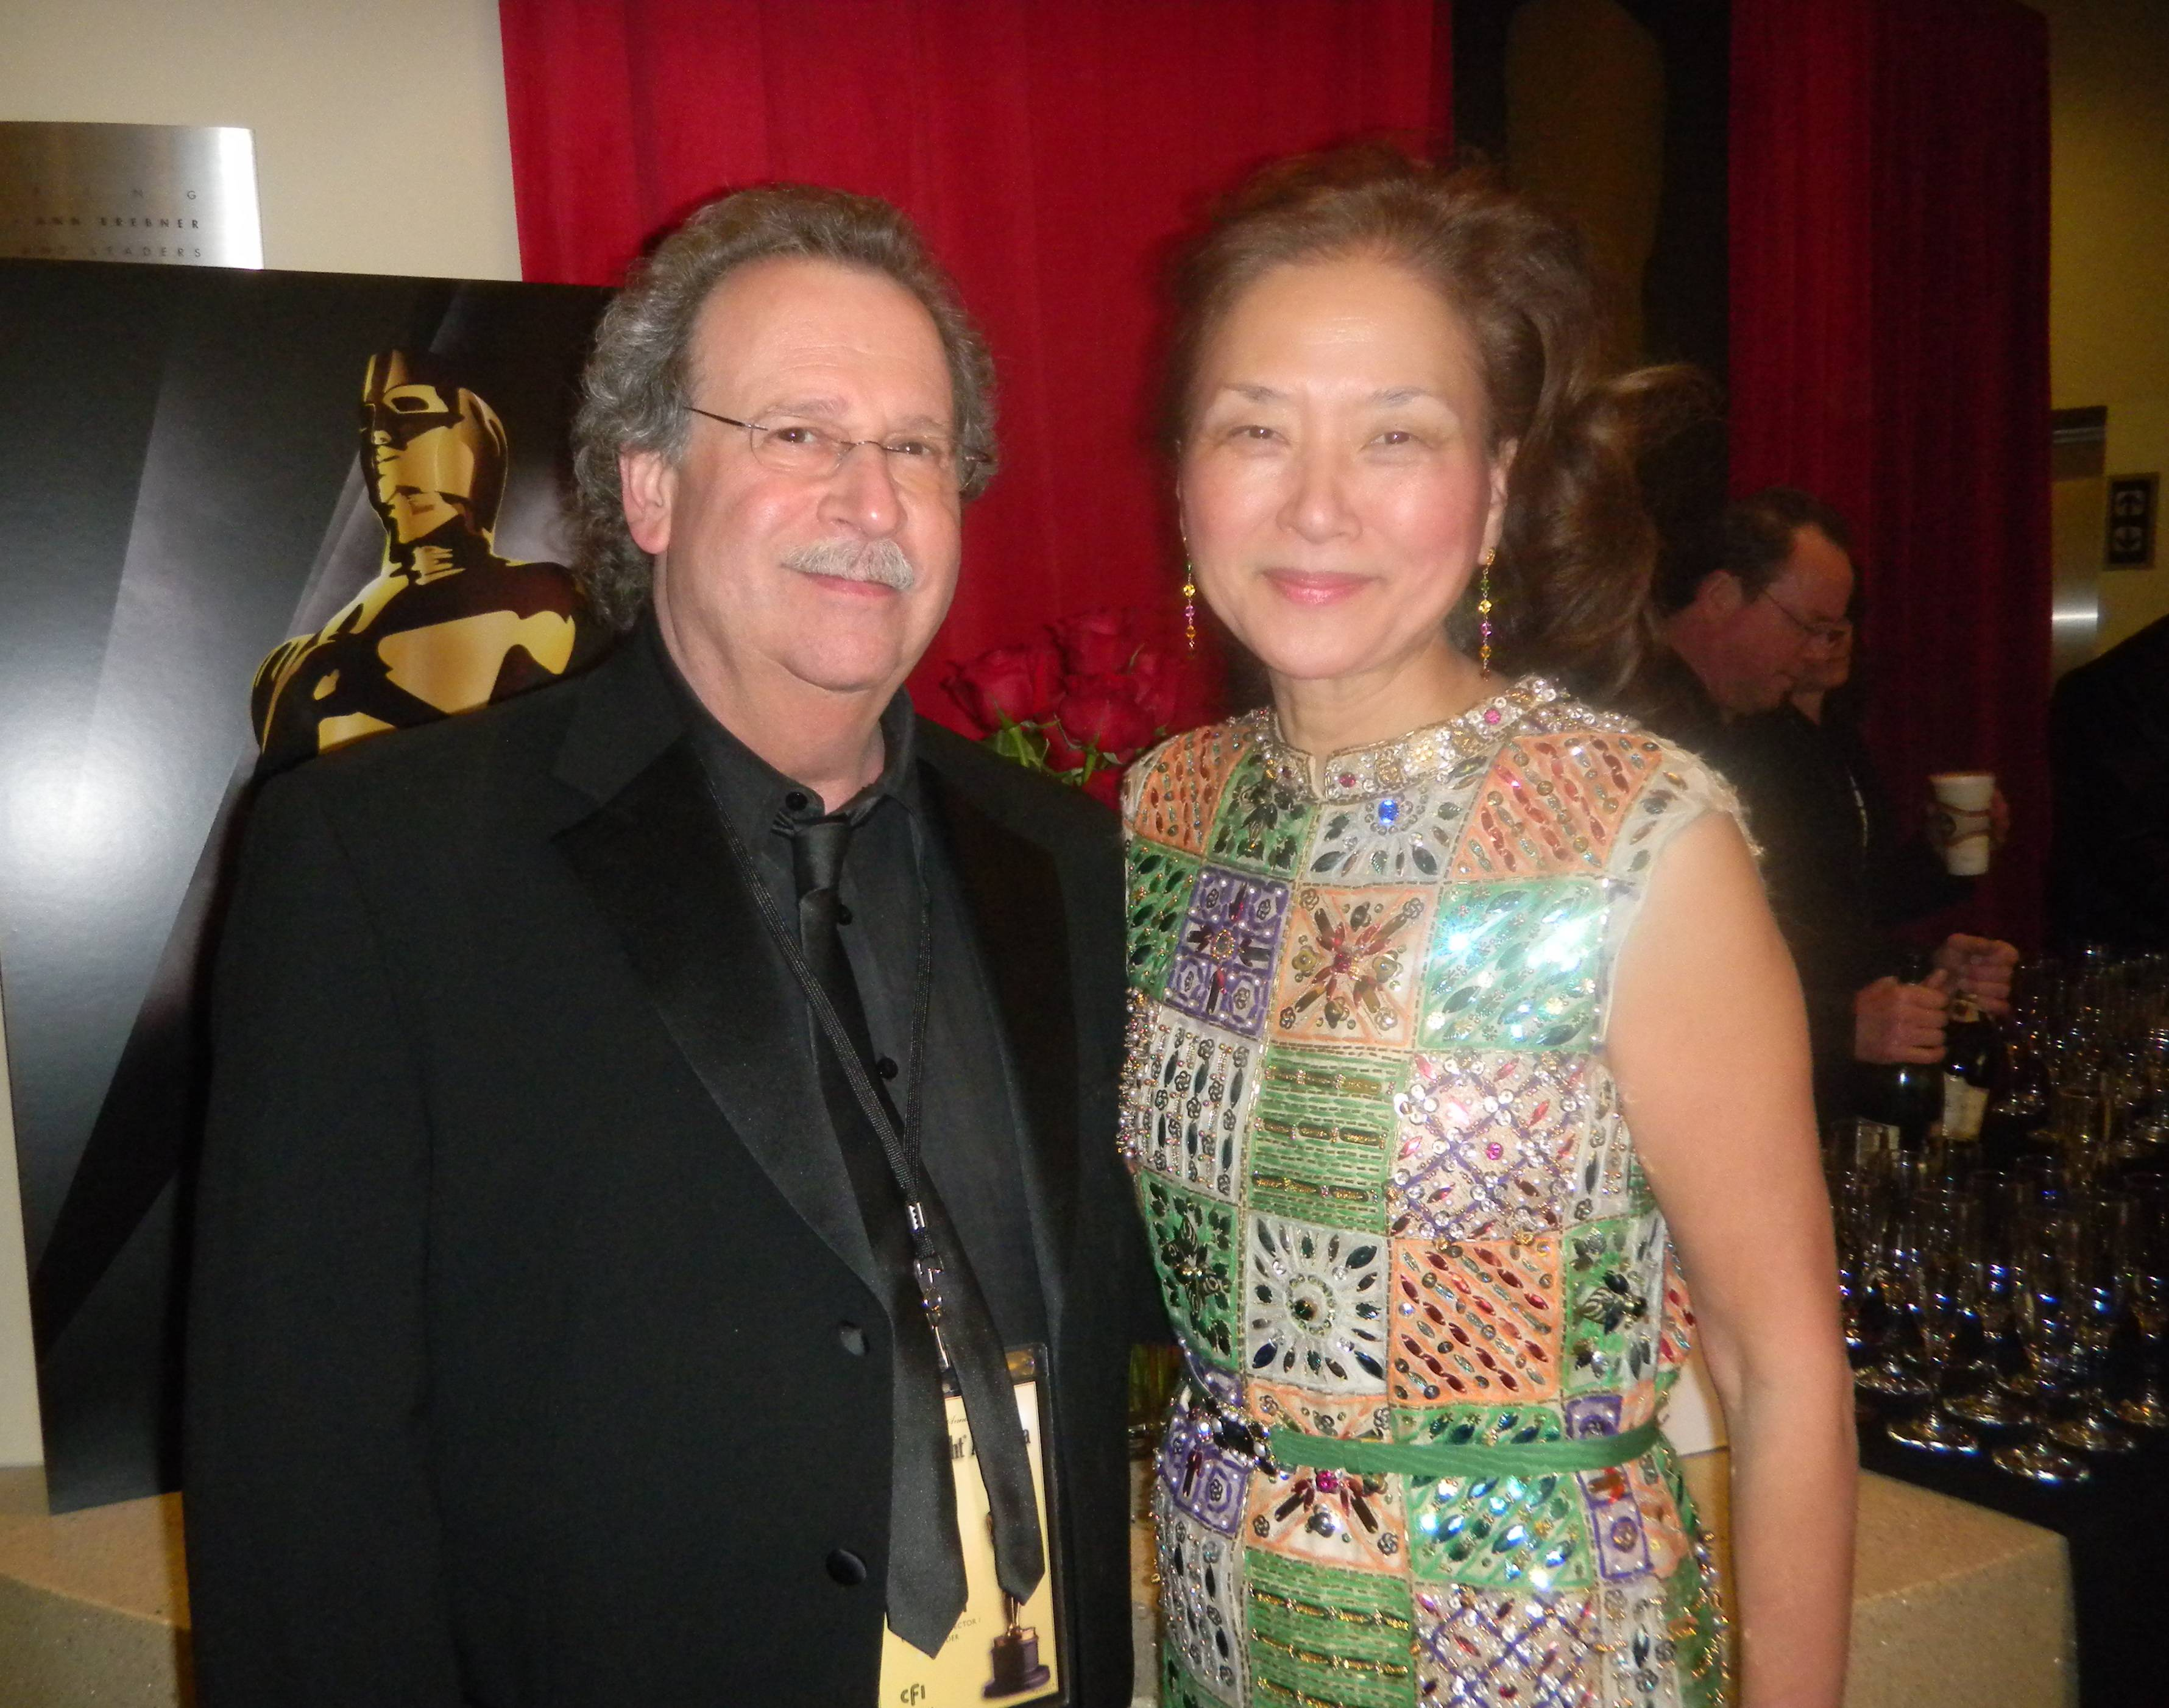 Olivia with Mark Fishkin, founder of CFI and Mill Valley Film Festival